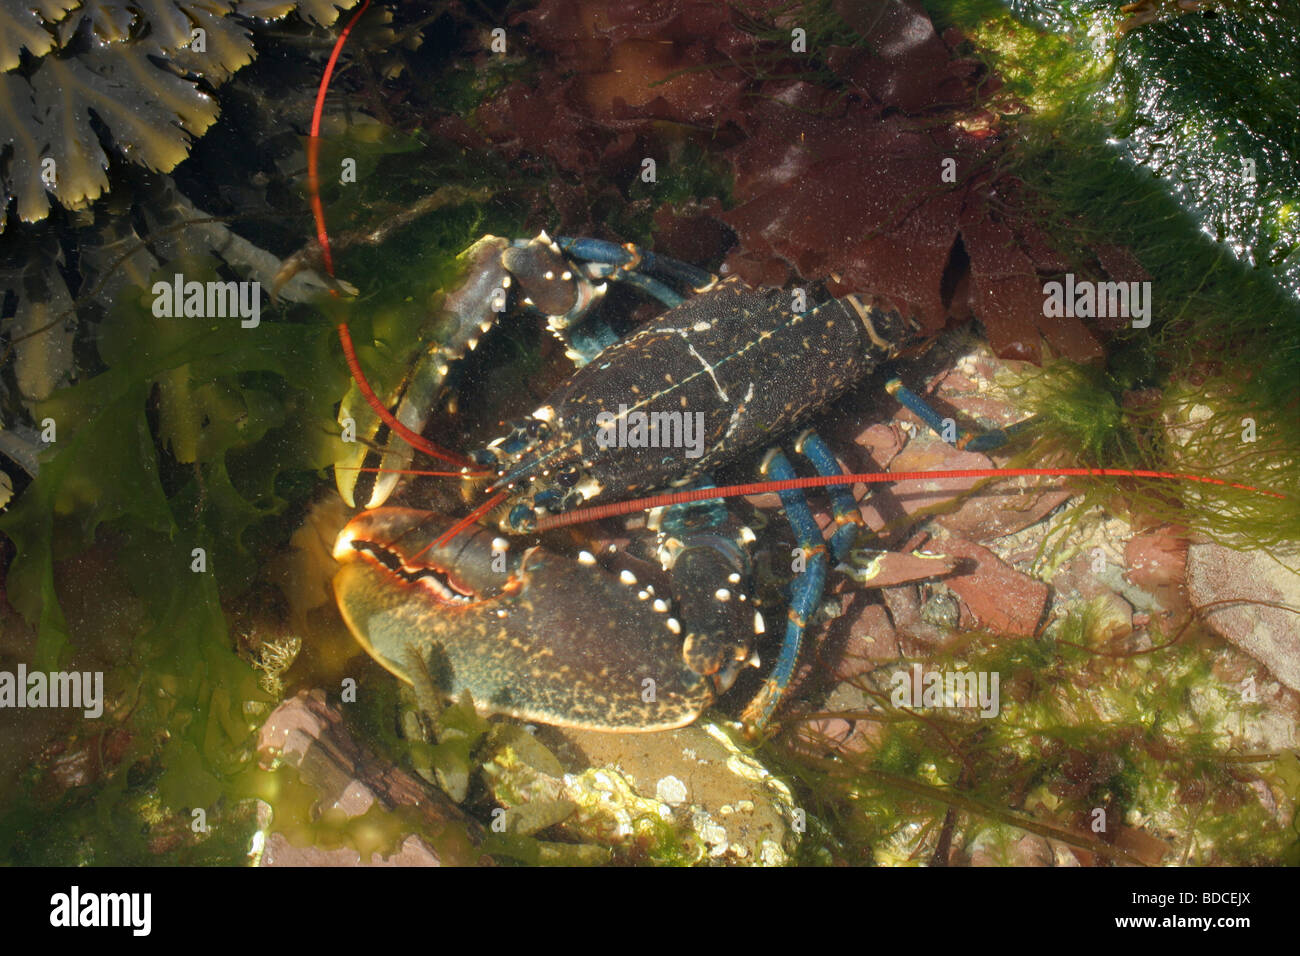 Common lobster Homarus gammarus Nephropidae in a rock pool at low Stock Photo: 25475826 - Alamy